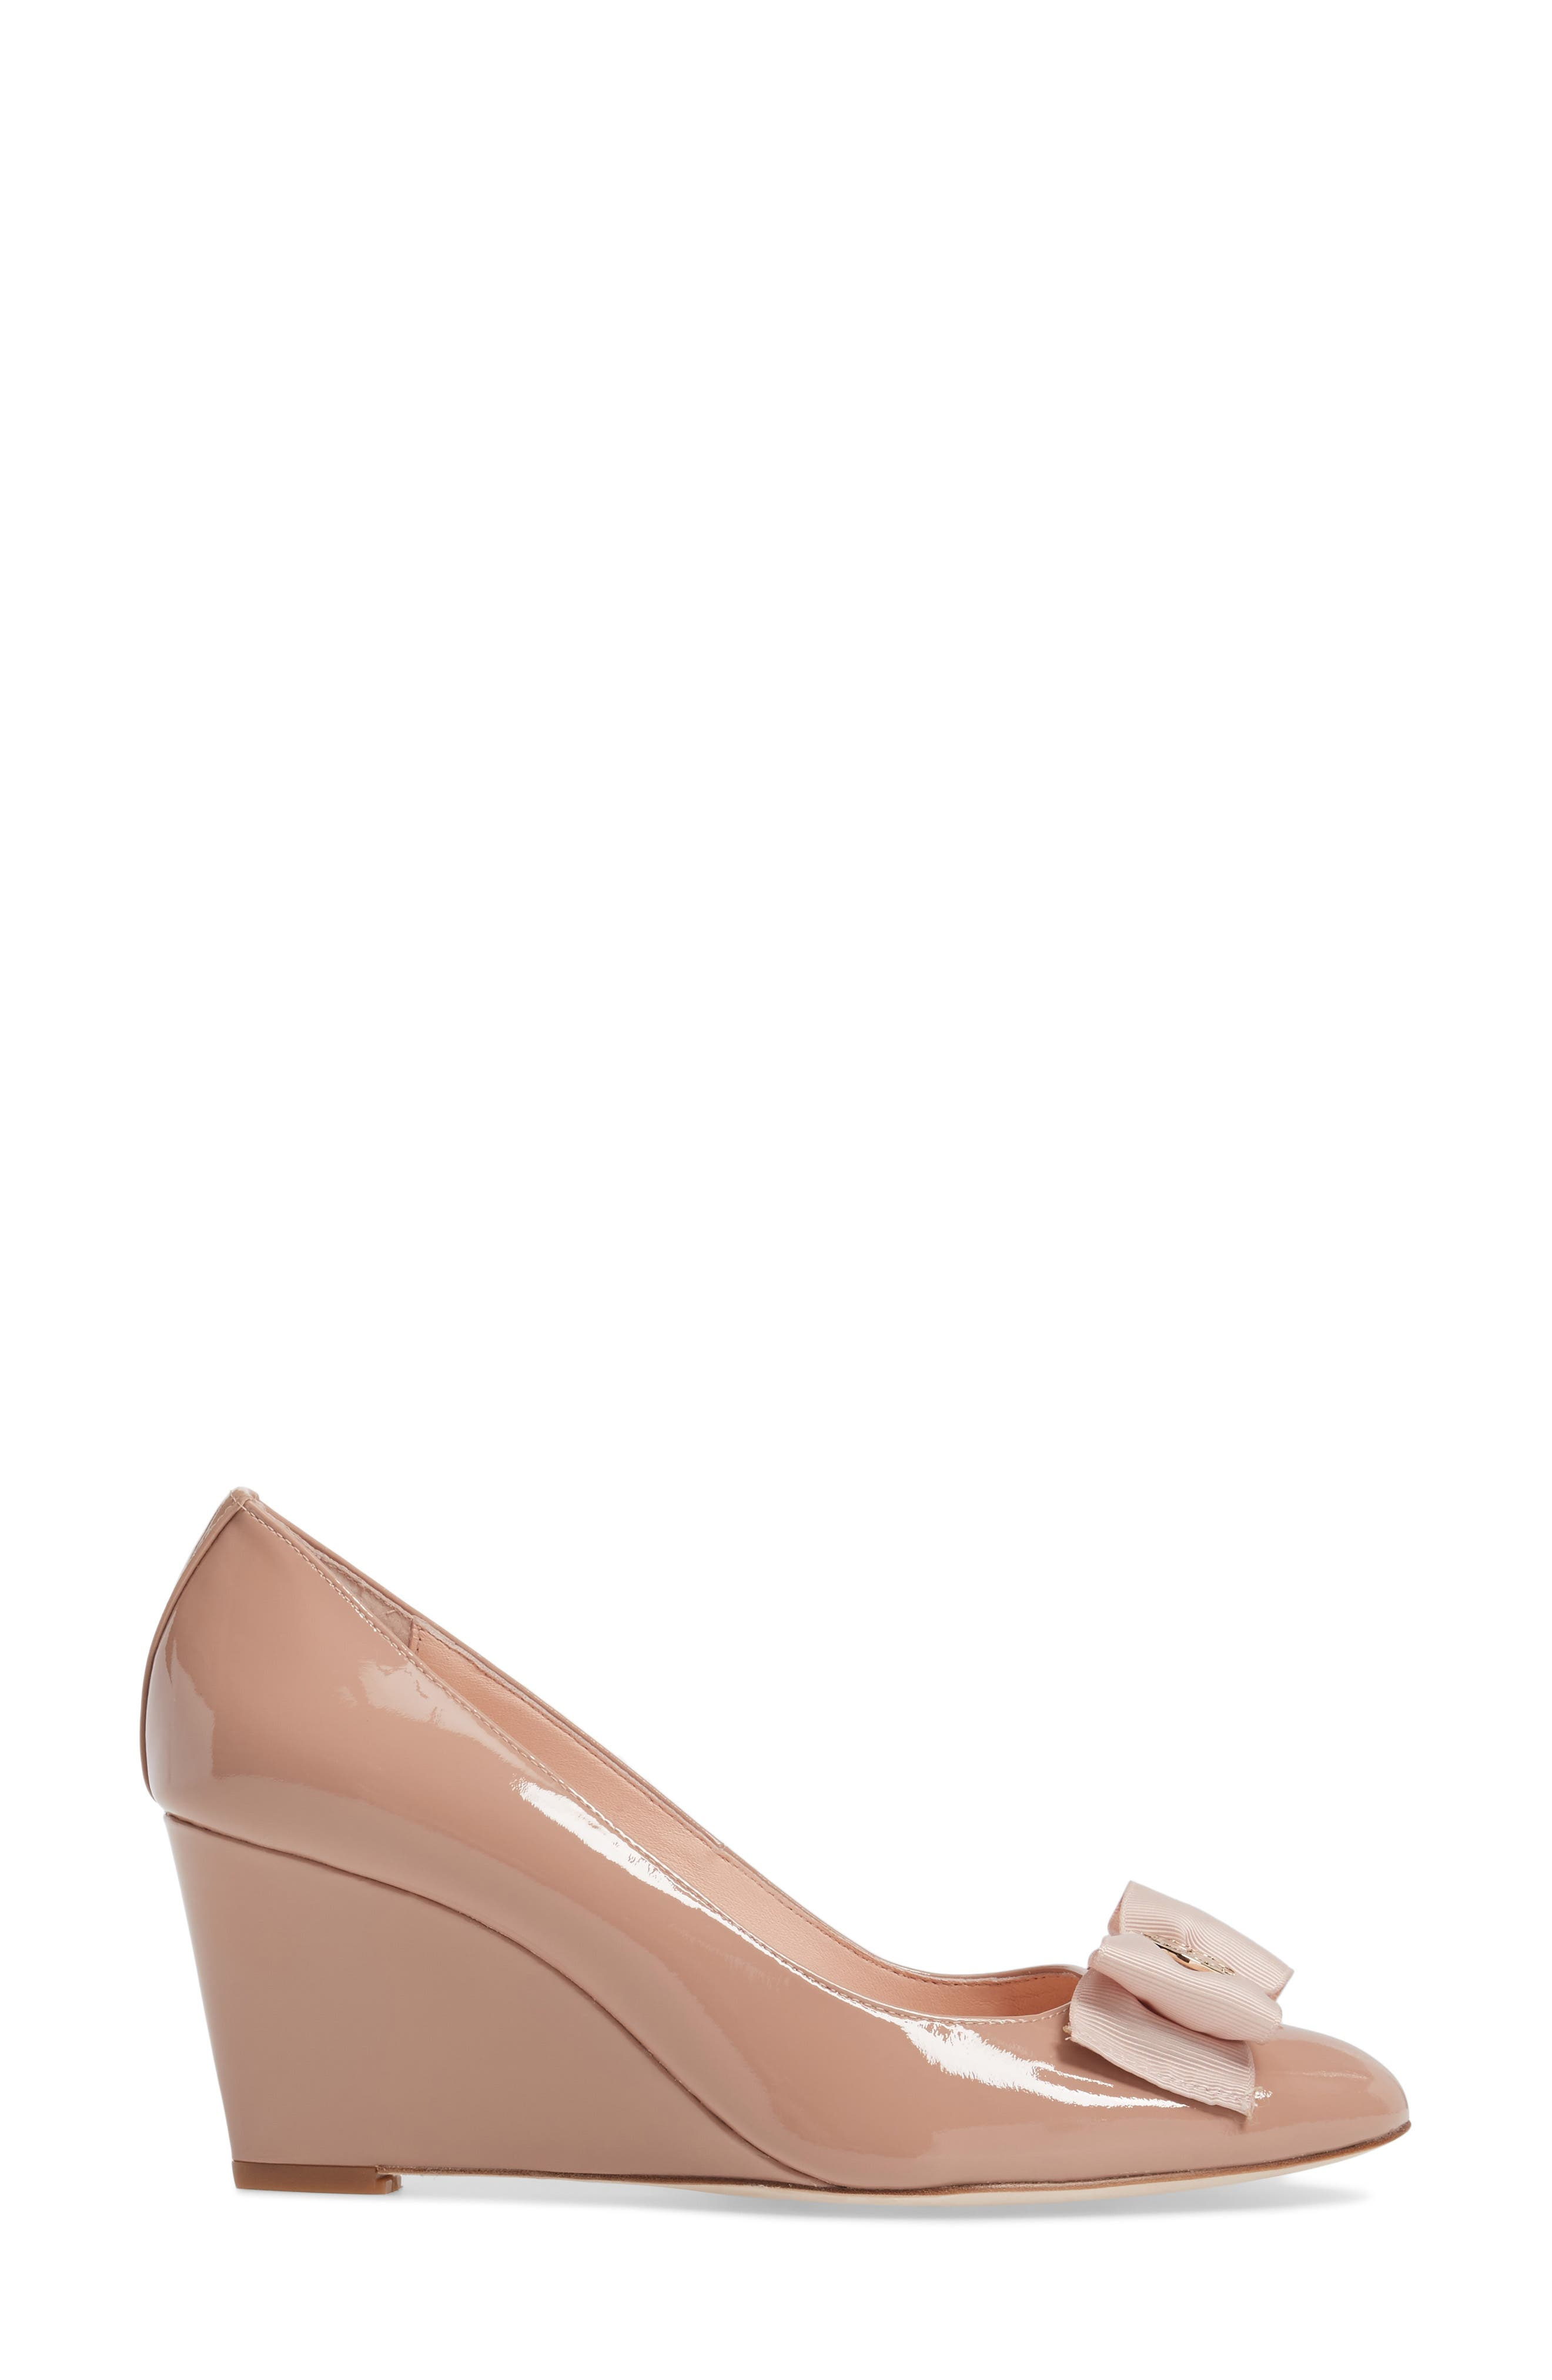 Alternate Image 3  - kate spade new york wescott wedge pump (Women)